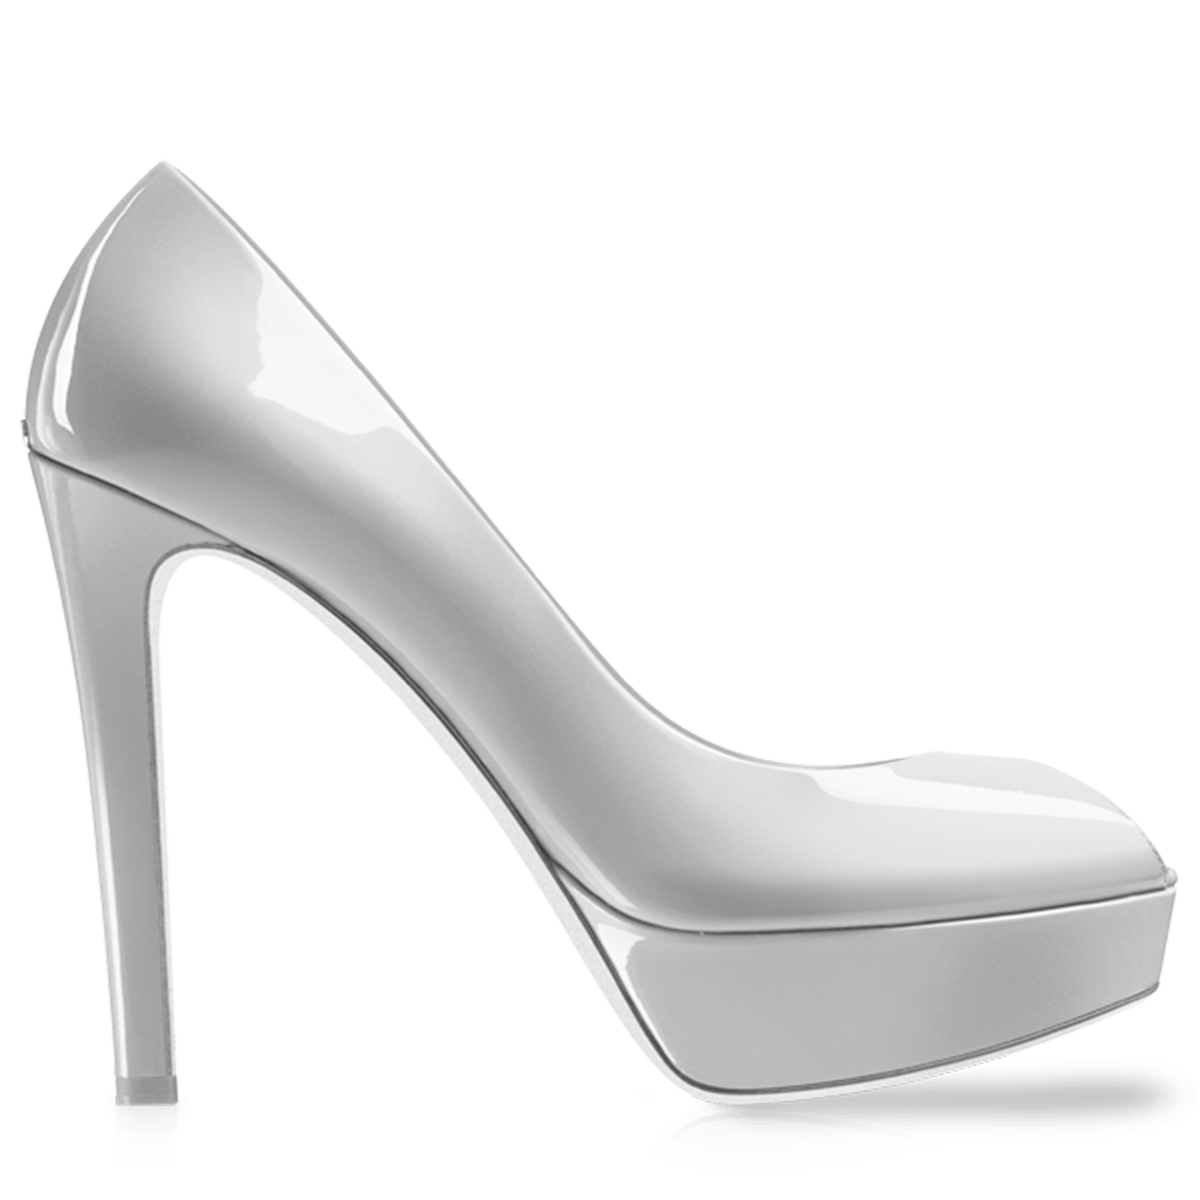 Women Shoes Png Image PNG Image